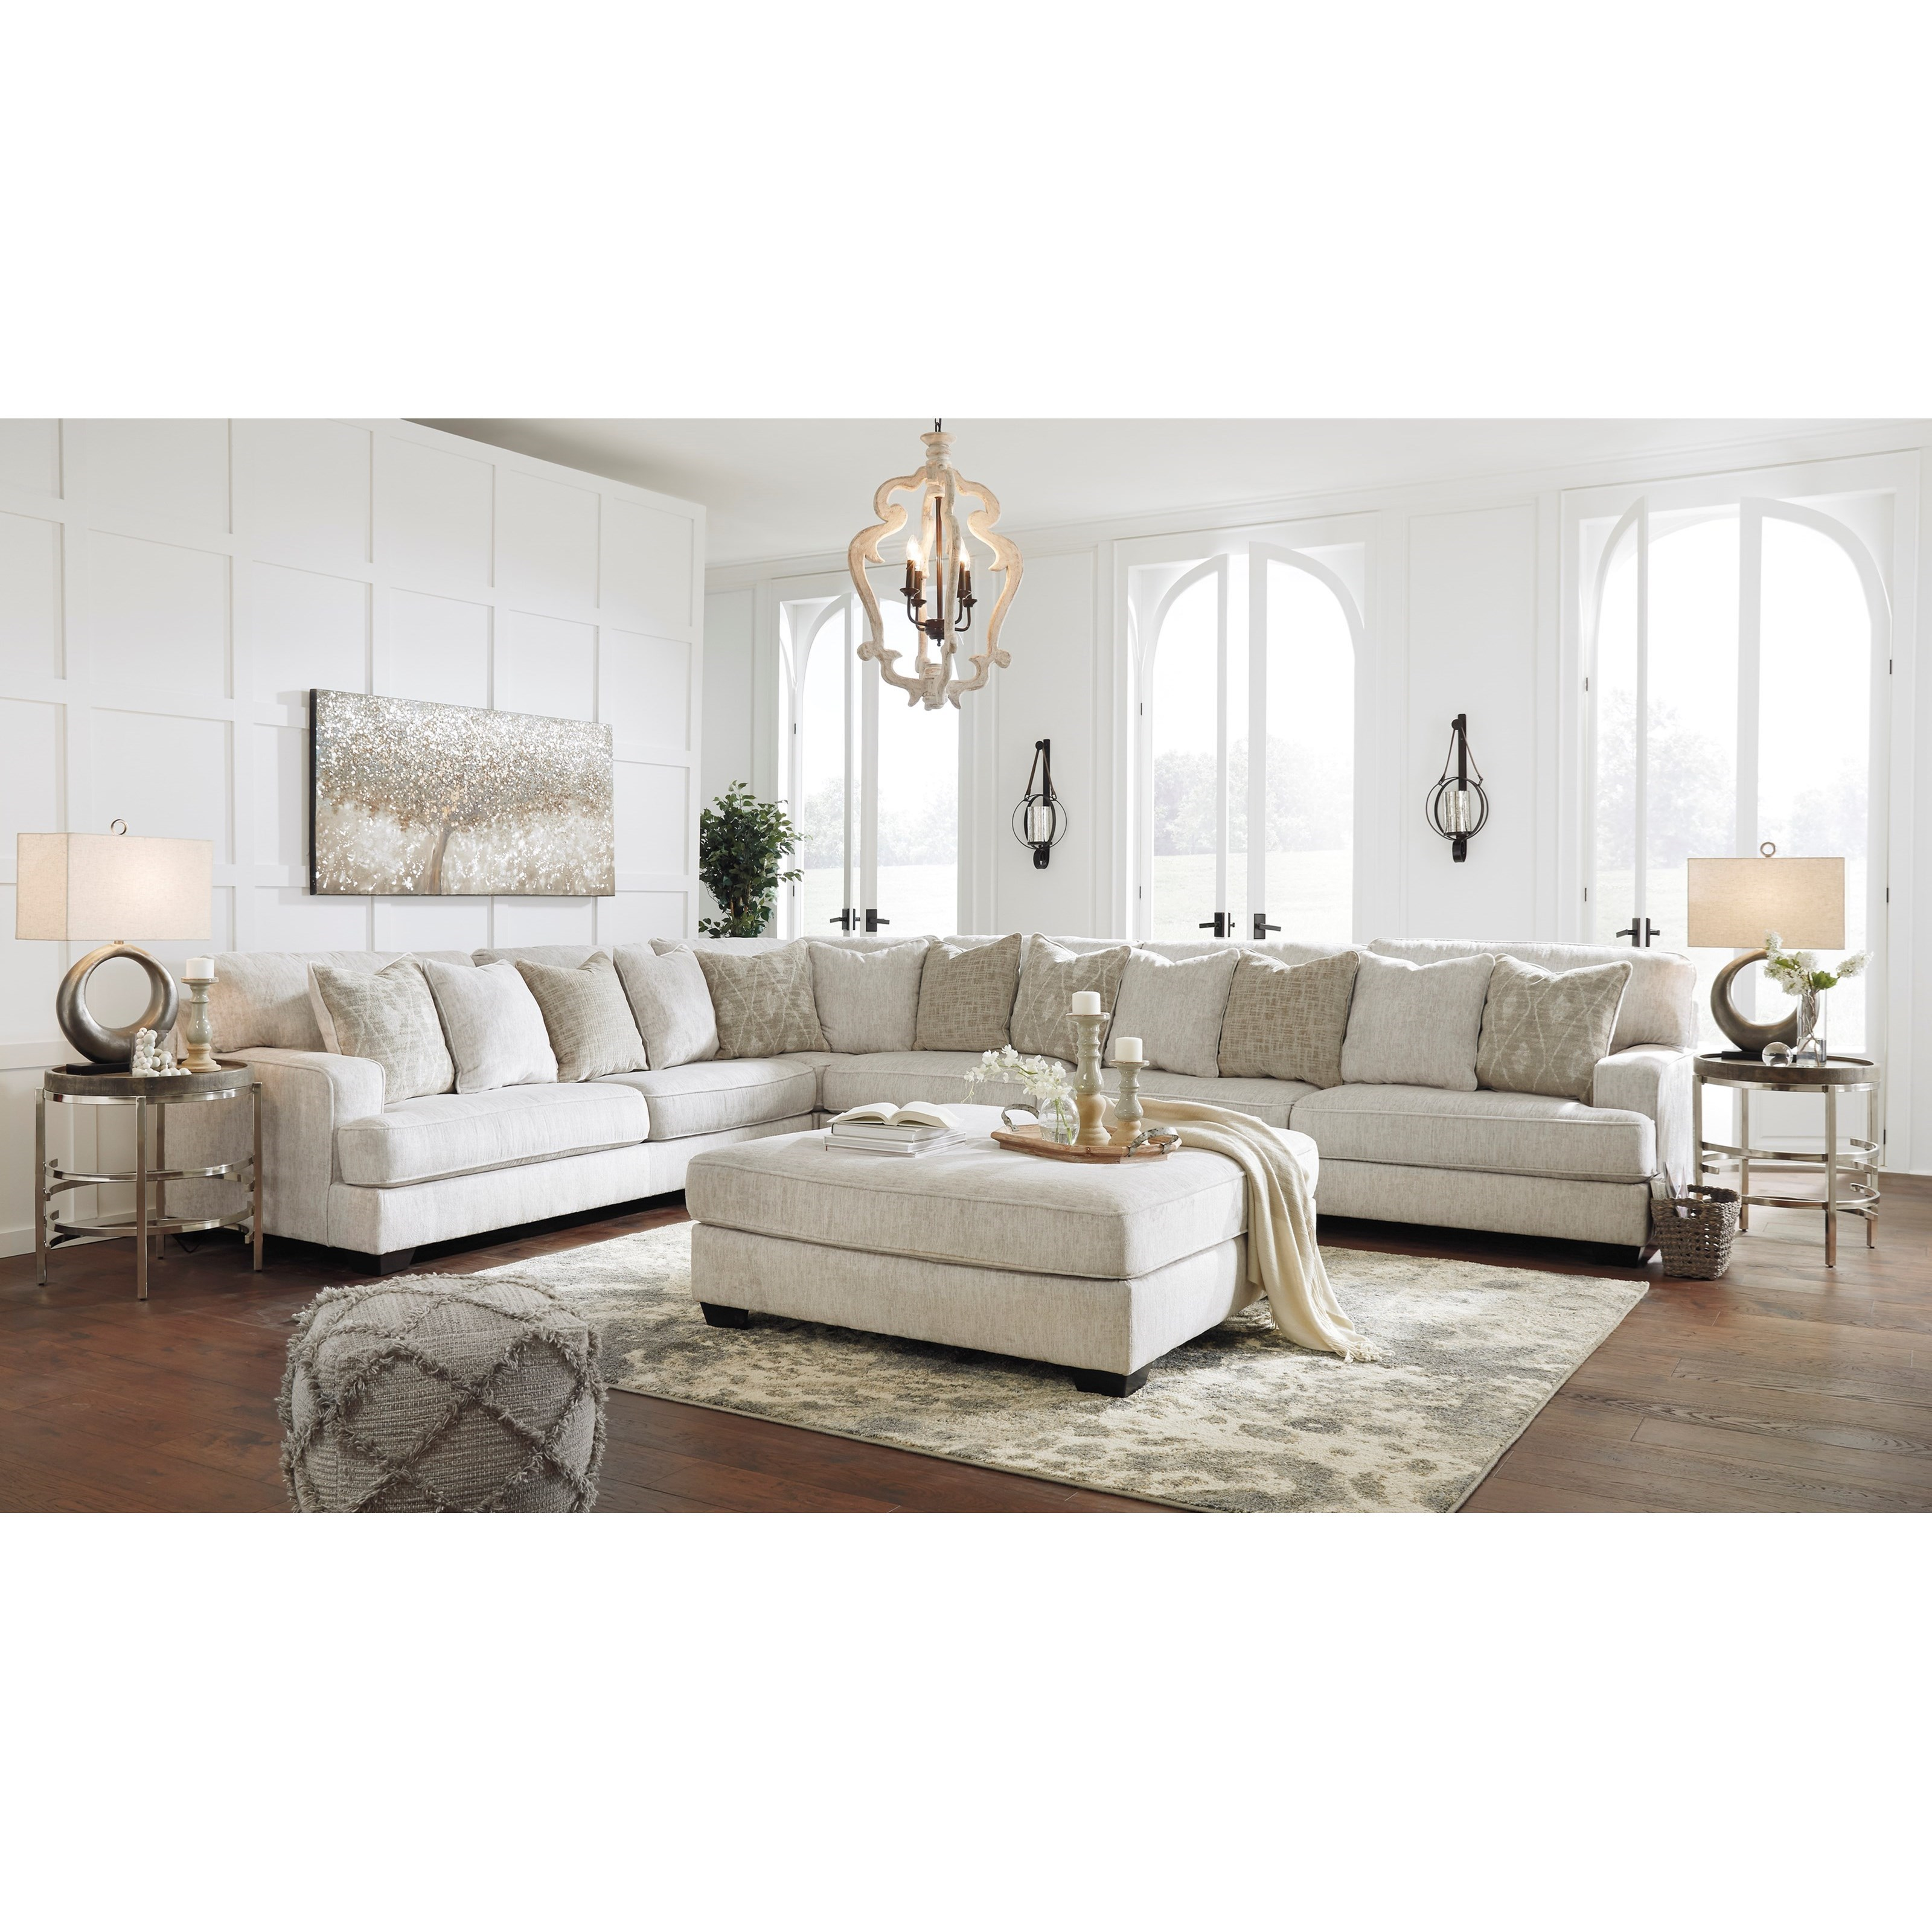 Rawcliffe Living Room Group by Signature Design by Ashley at Northeast Factory Direct